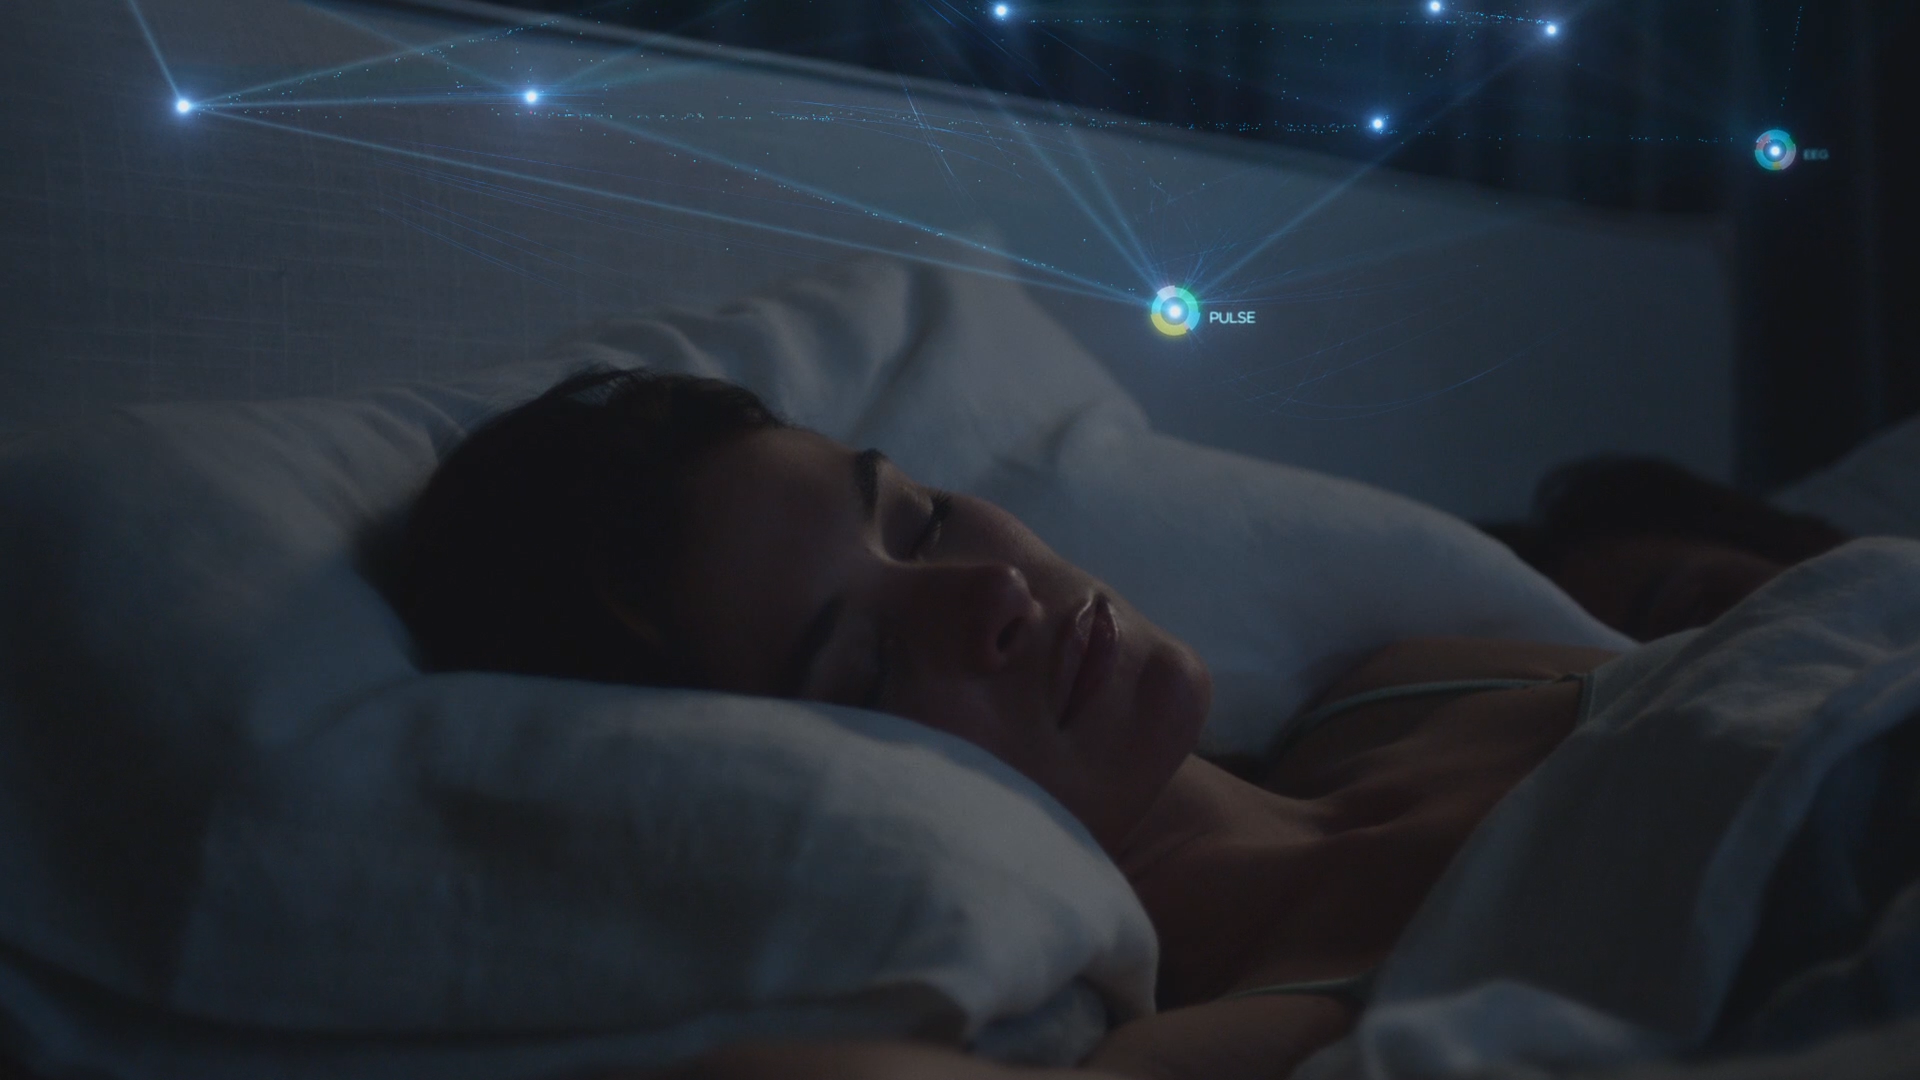 Samsung Sleep Sense (01821)